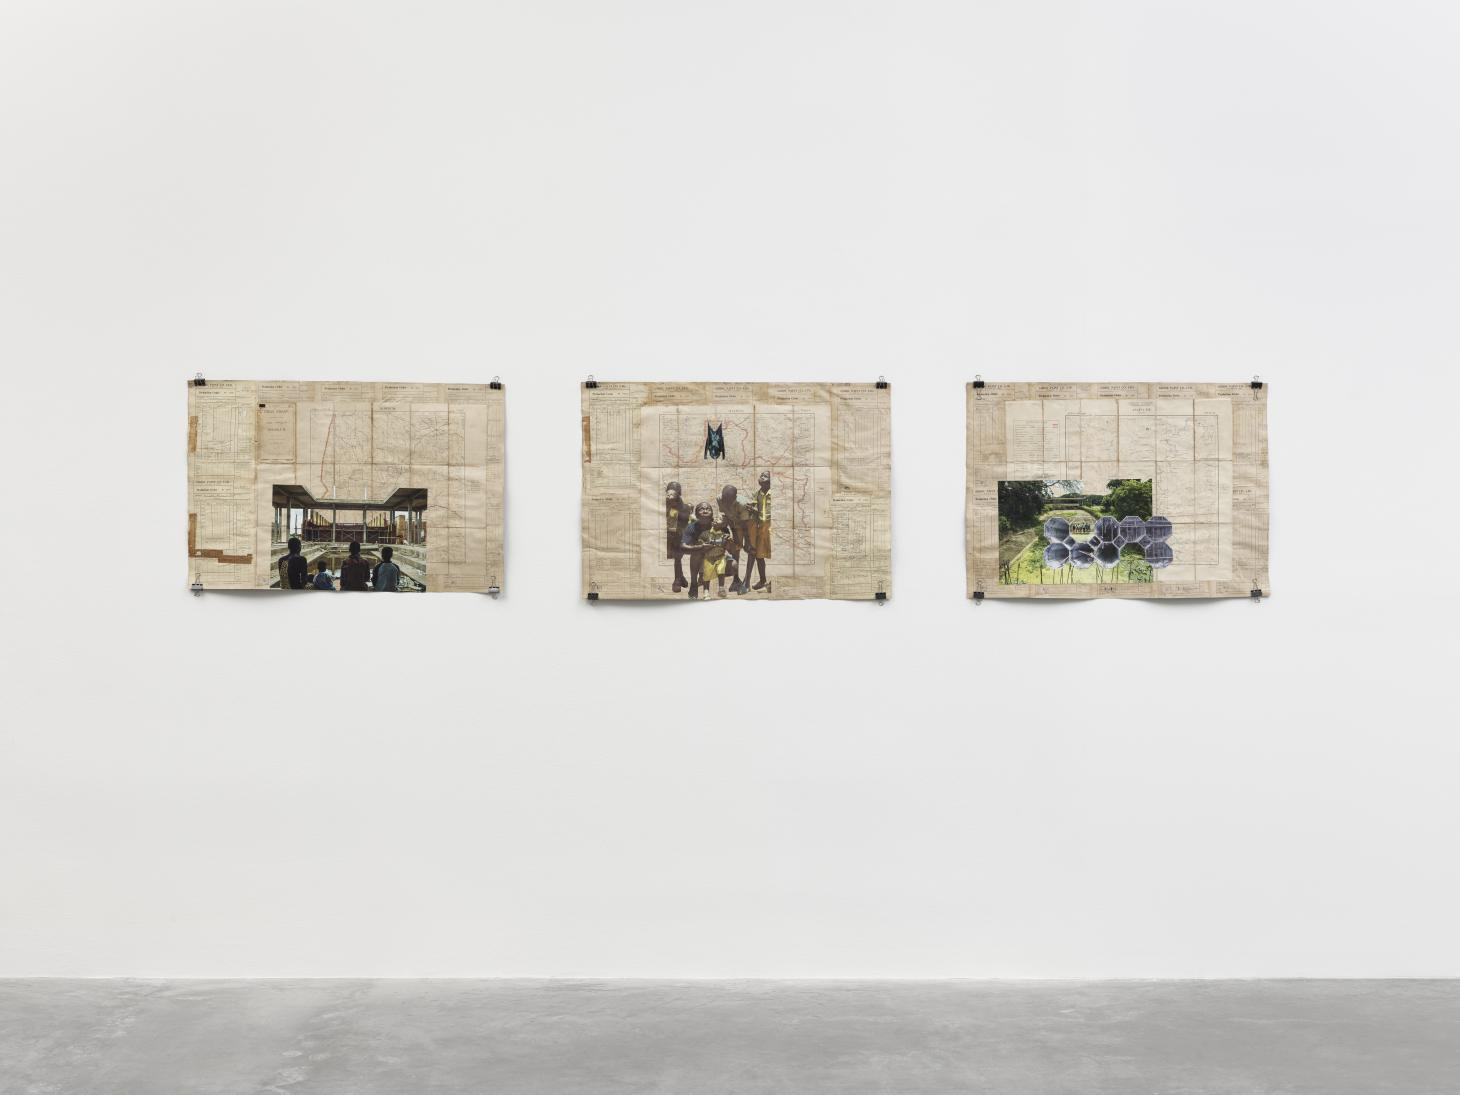 Three collaged artworks on white wall at White Cube gallery, exhibition by Ibrahim Mahama